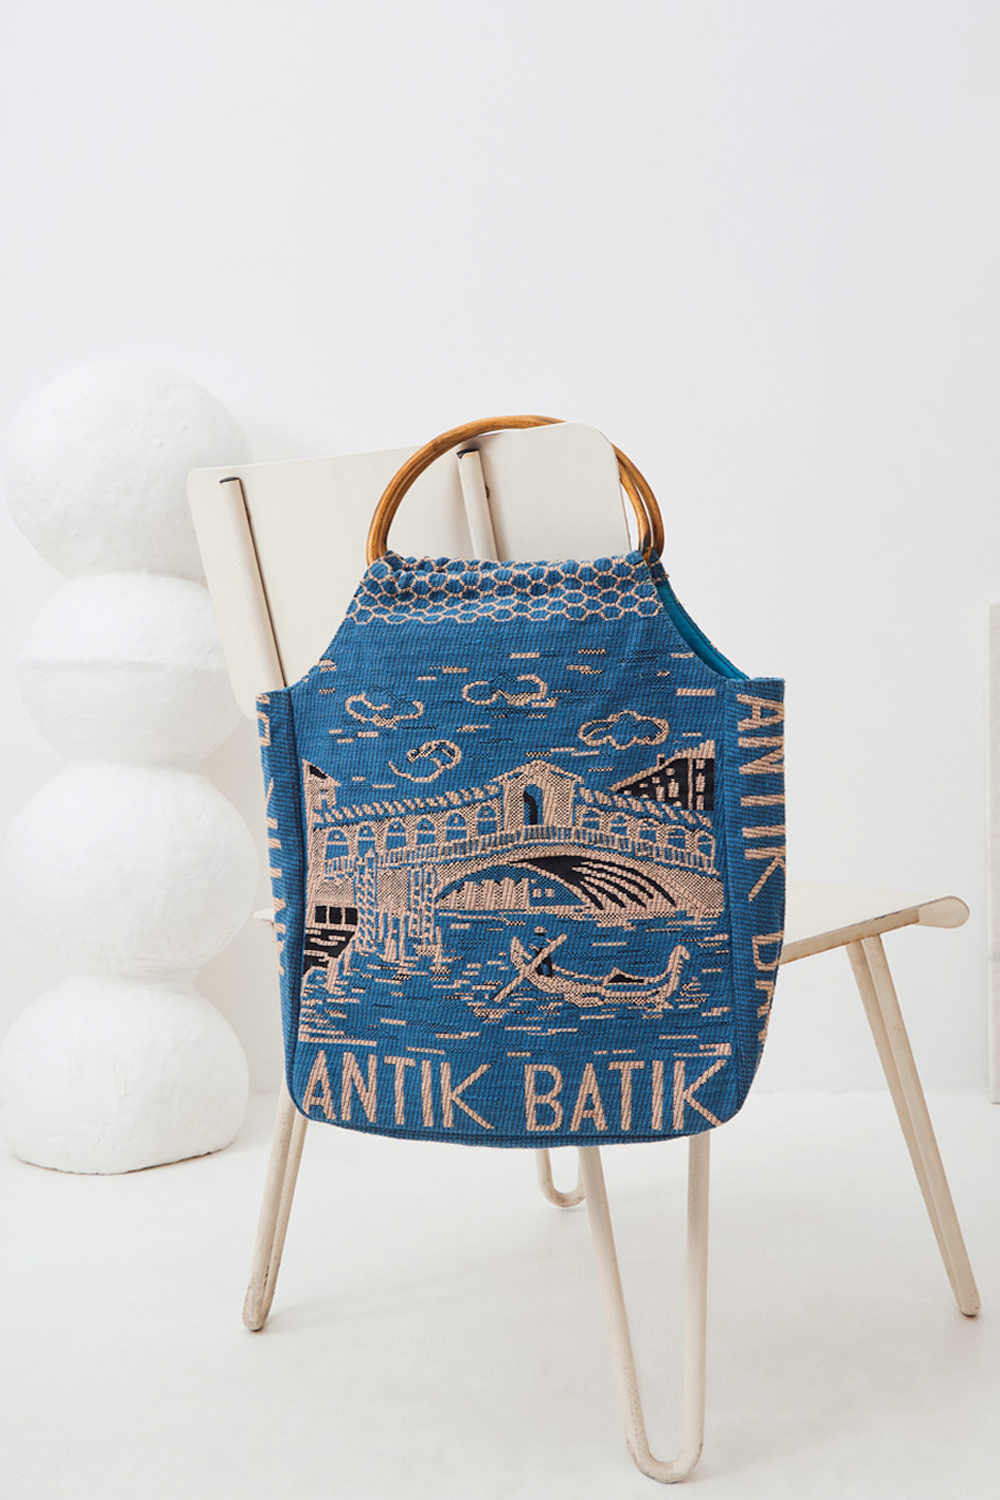 Sac à main tissé Venezia - Bleu - Antik Batik (photo)